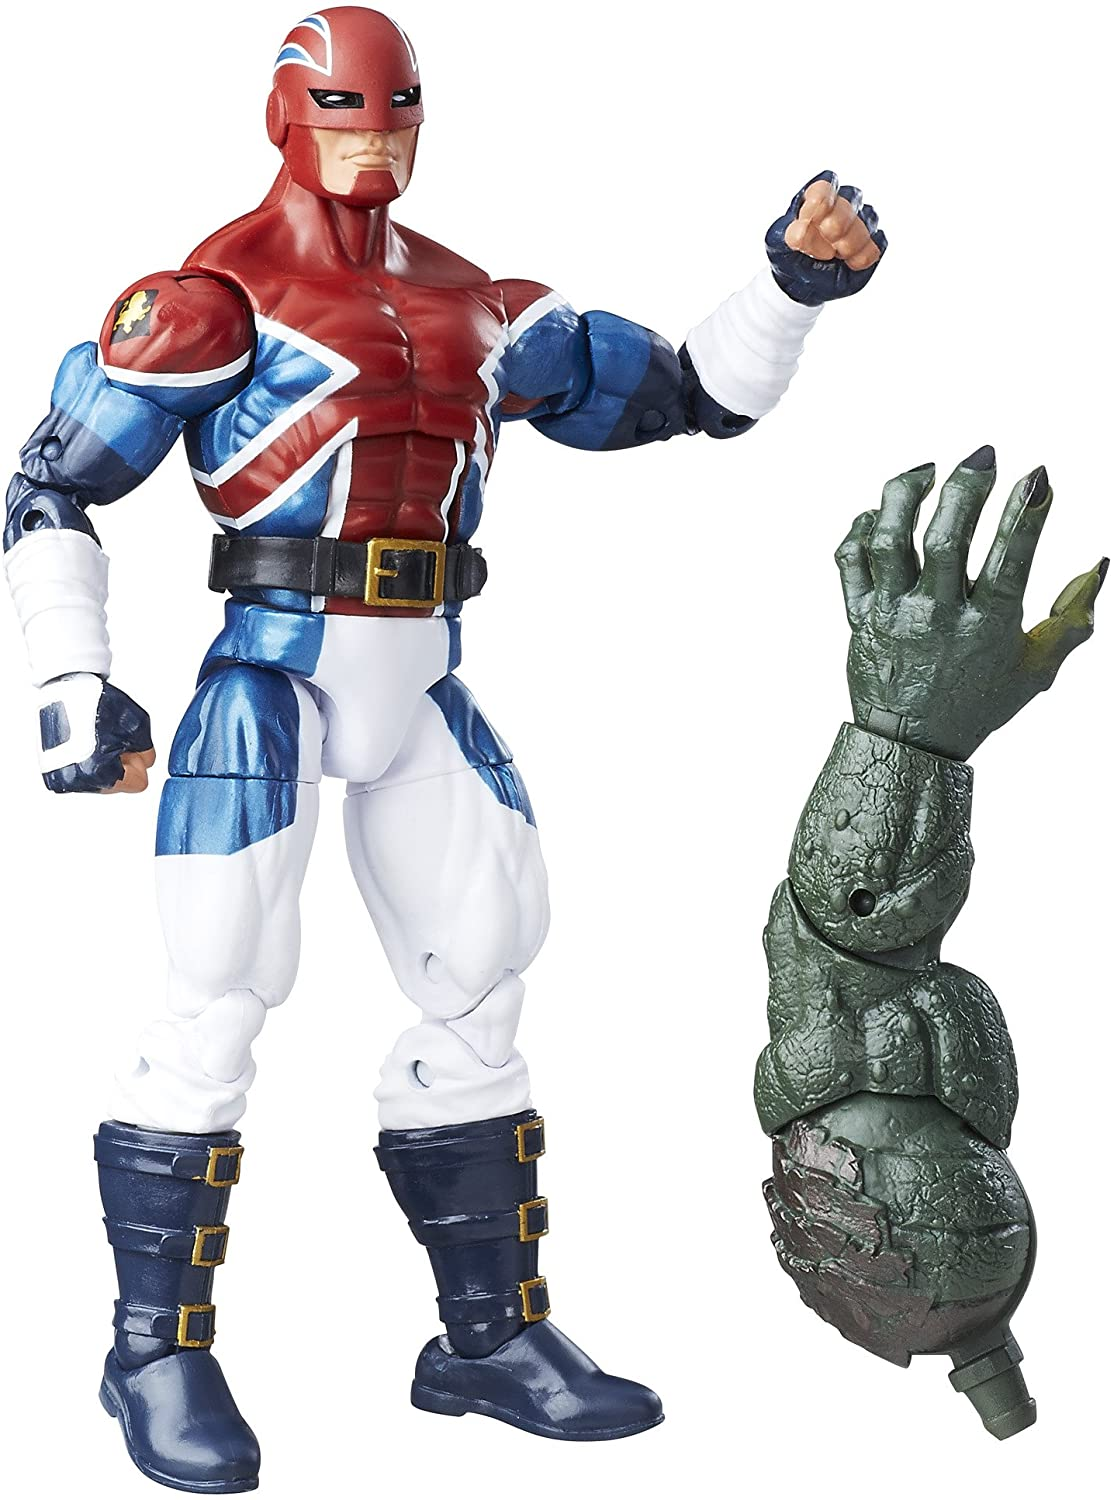 Marvel Legends Series Captain Britain - Capitão Bretanha Oficial Licenciado